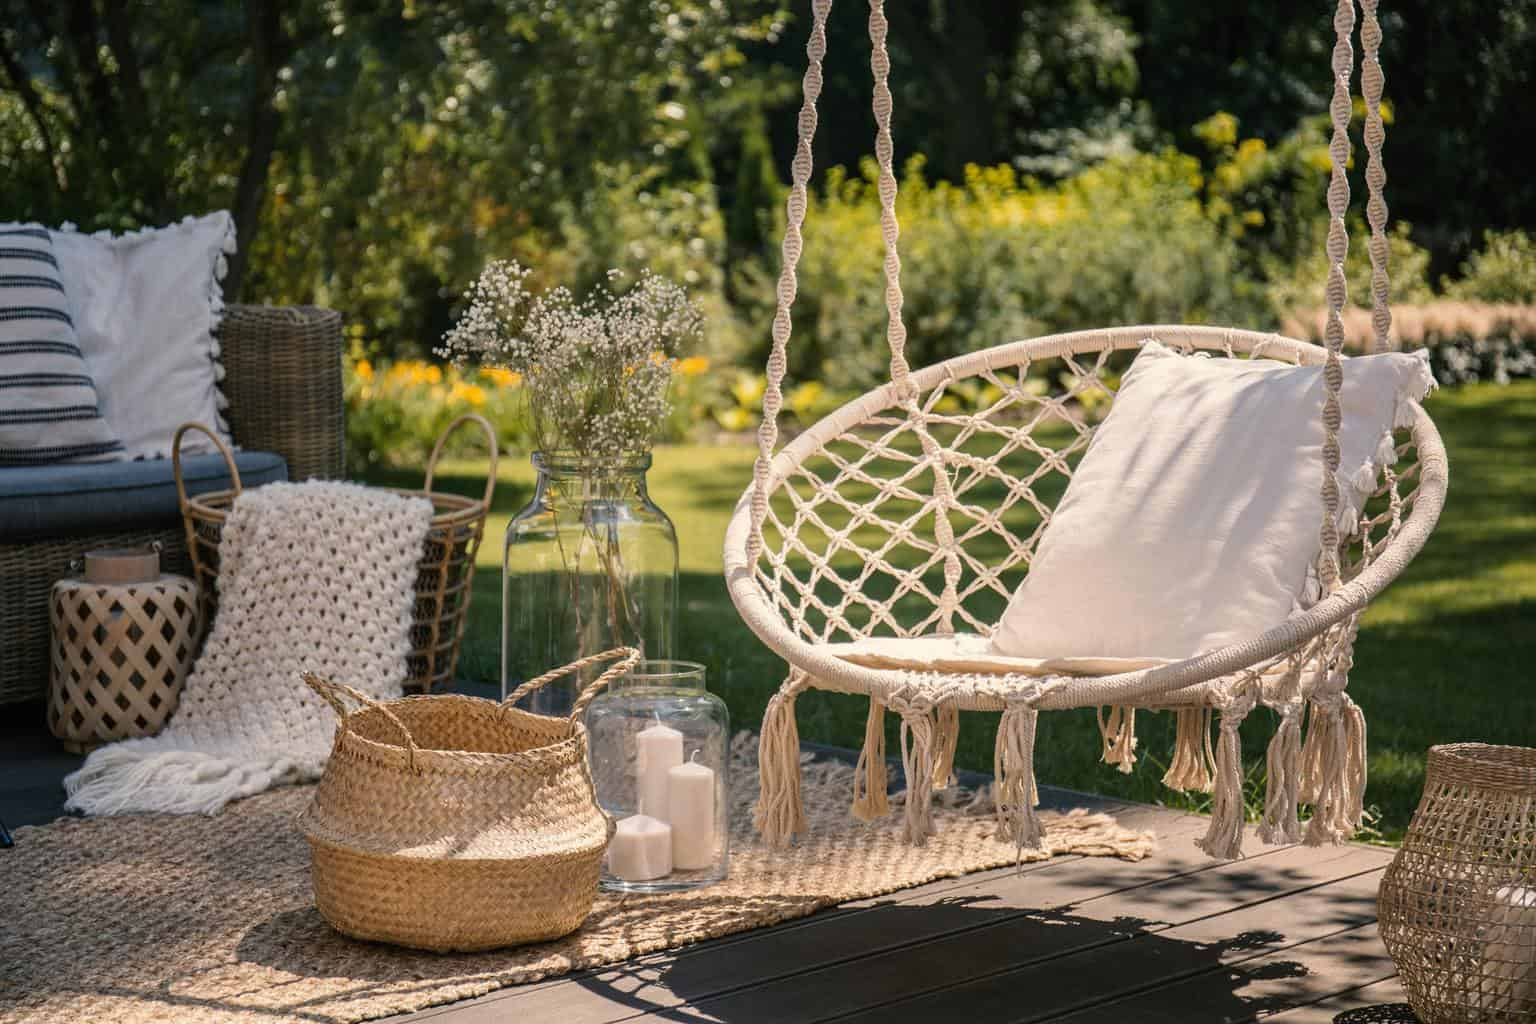 A beige string swing with a pillow on a patio. Wicker baskets, a